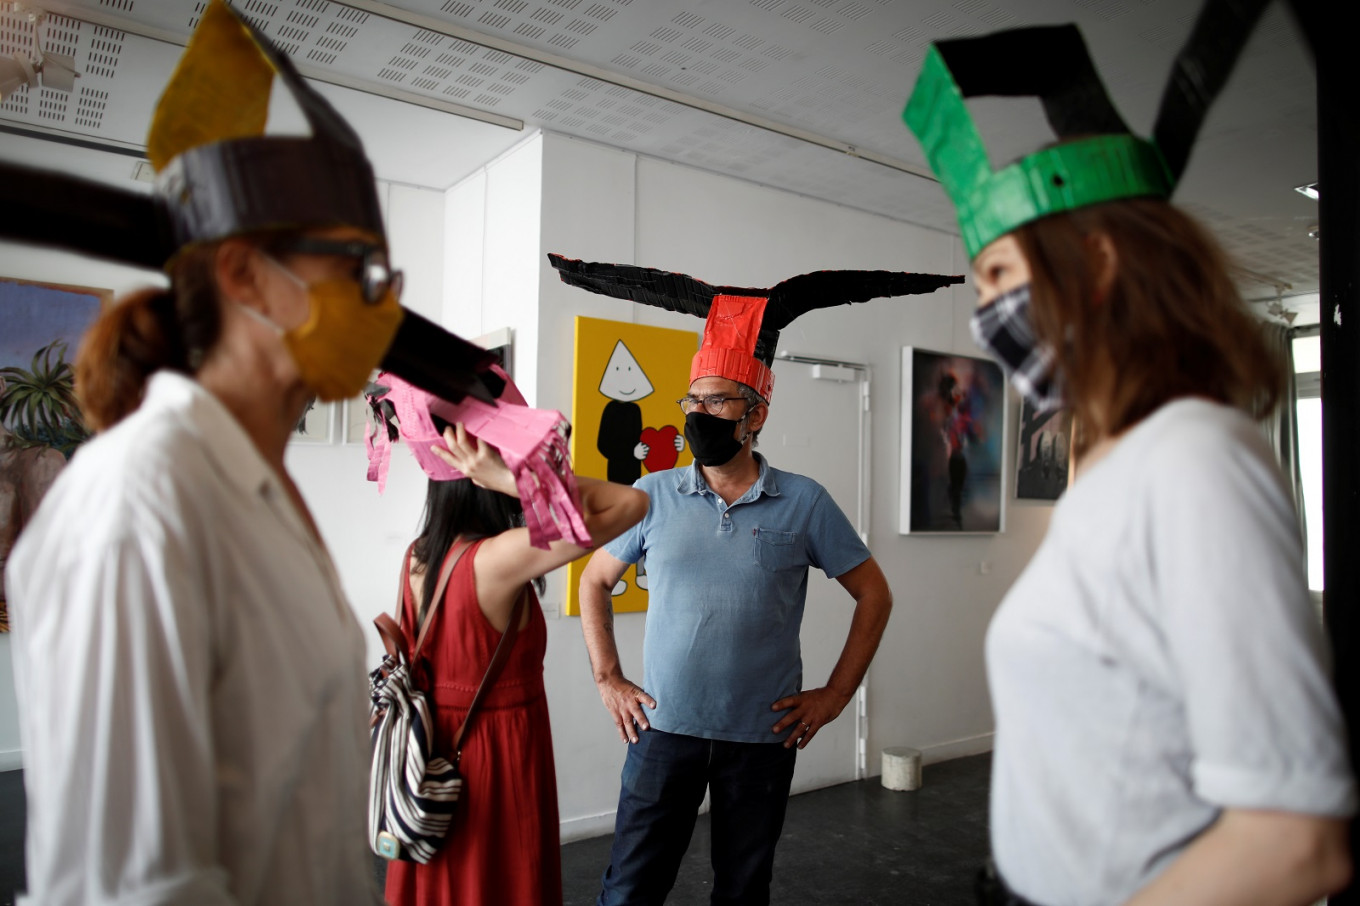 Winging it: Paris gallery keeps visitors apart with extension hats